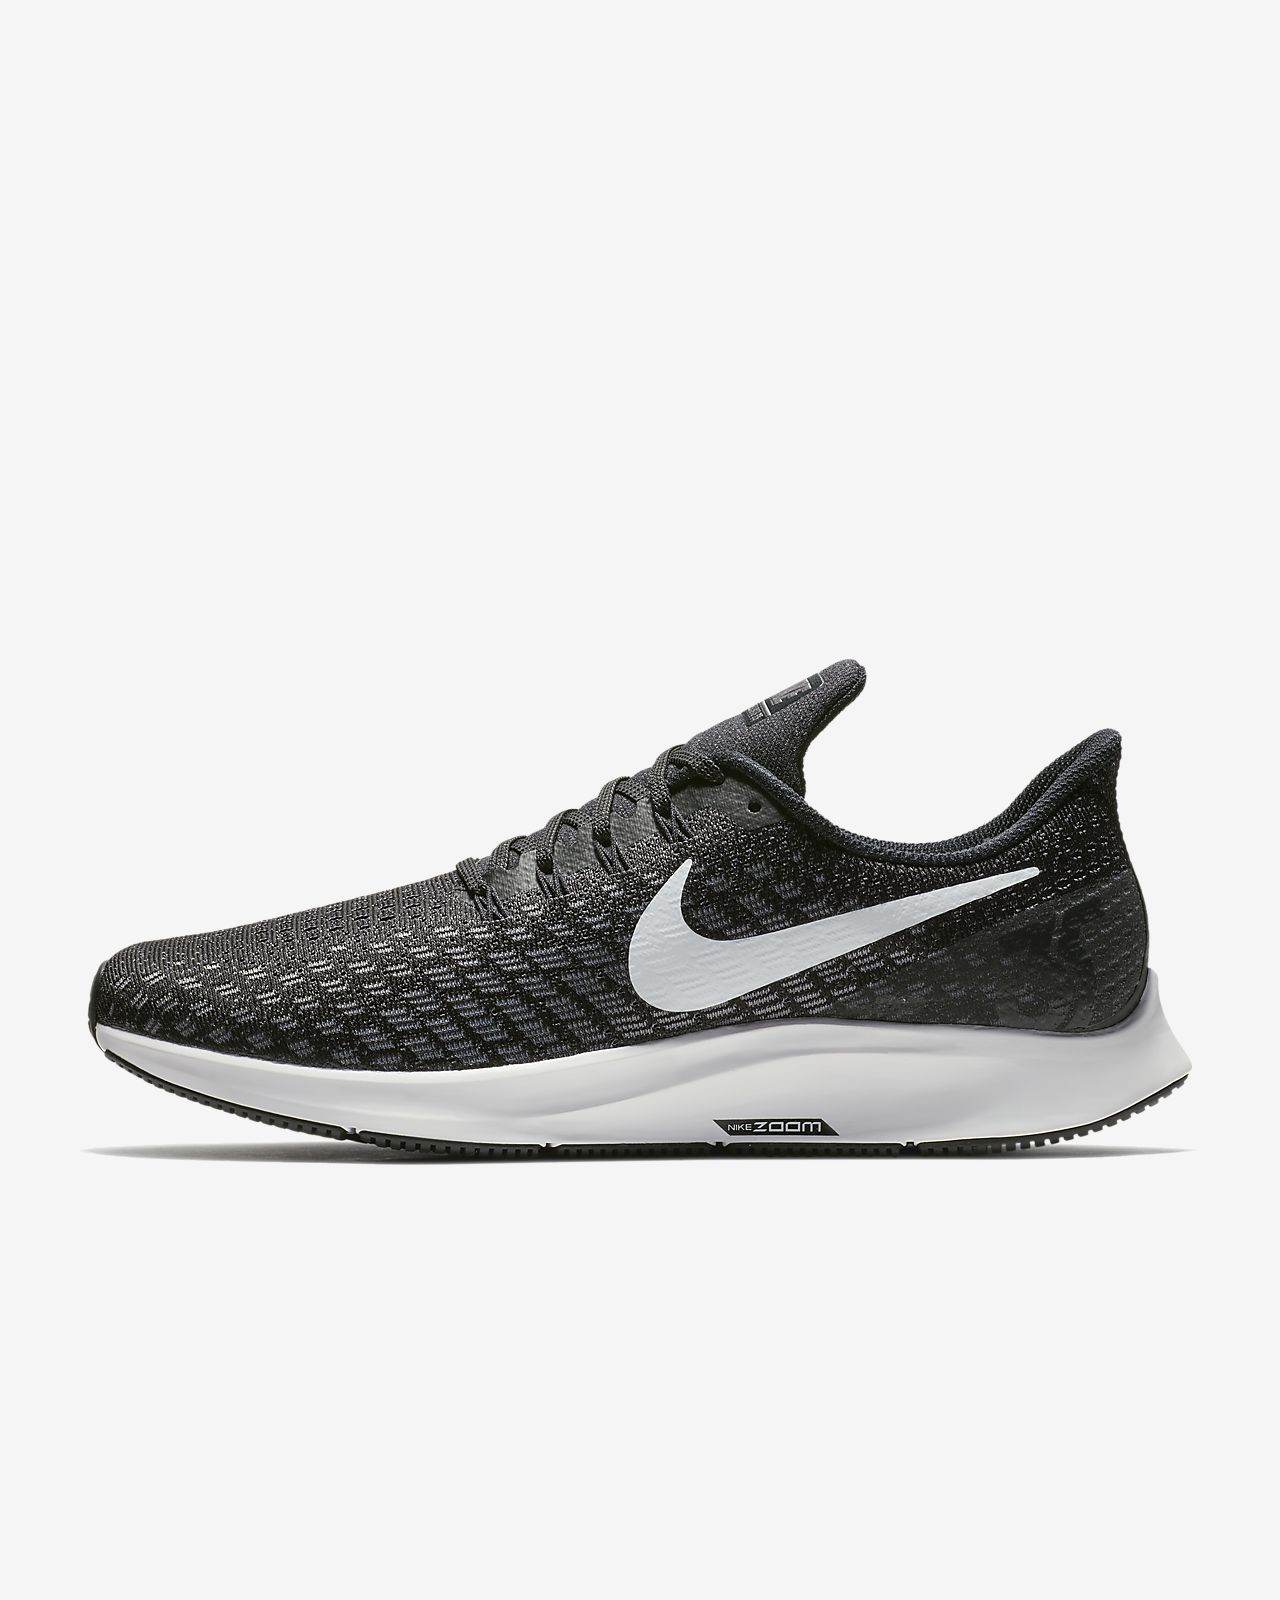 4e6e956911 Nike Air Zoom Pegasus 35 Men's Running Shoe. Nike.com